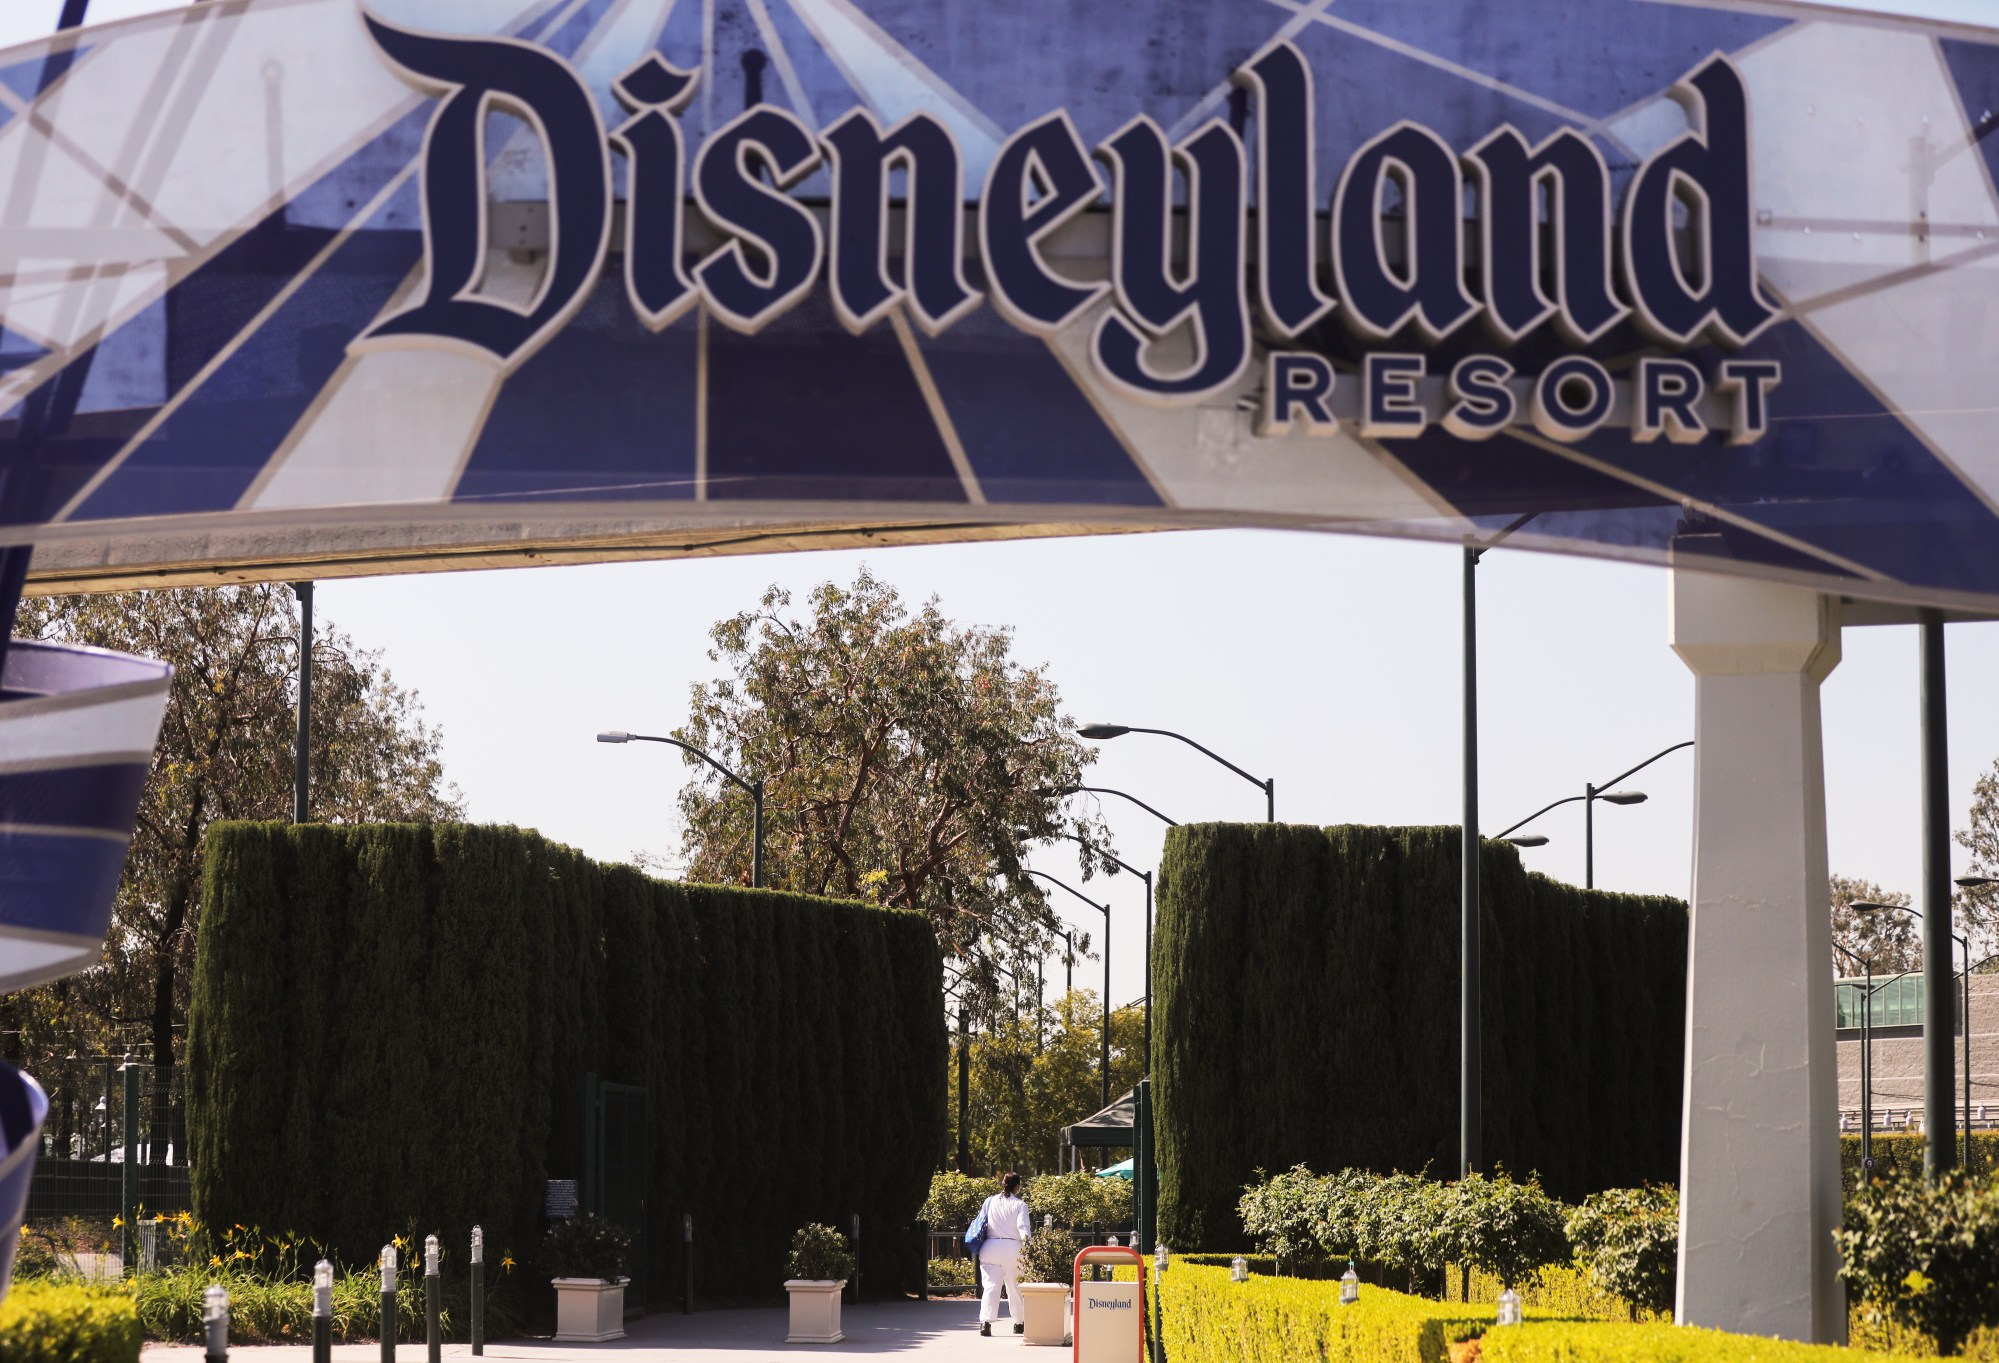 A person walks into an entrance to Disneyland in Anaheim on Sept. 30, 2020. (Mario Tama / Getty Images)